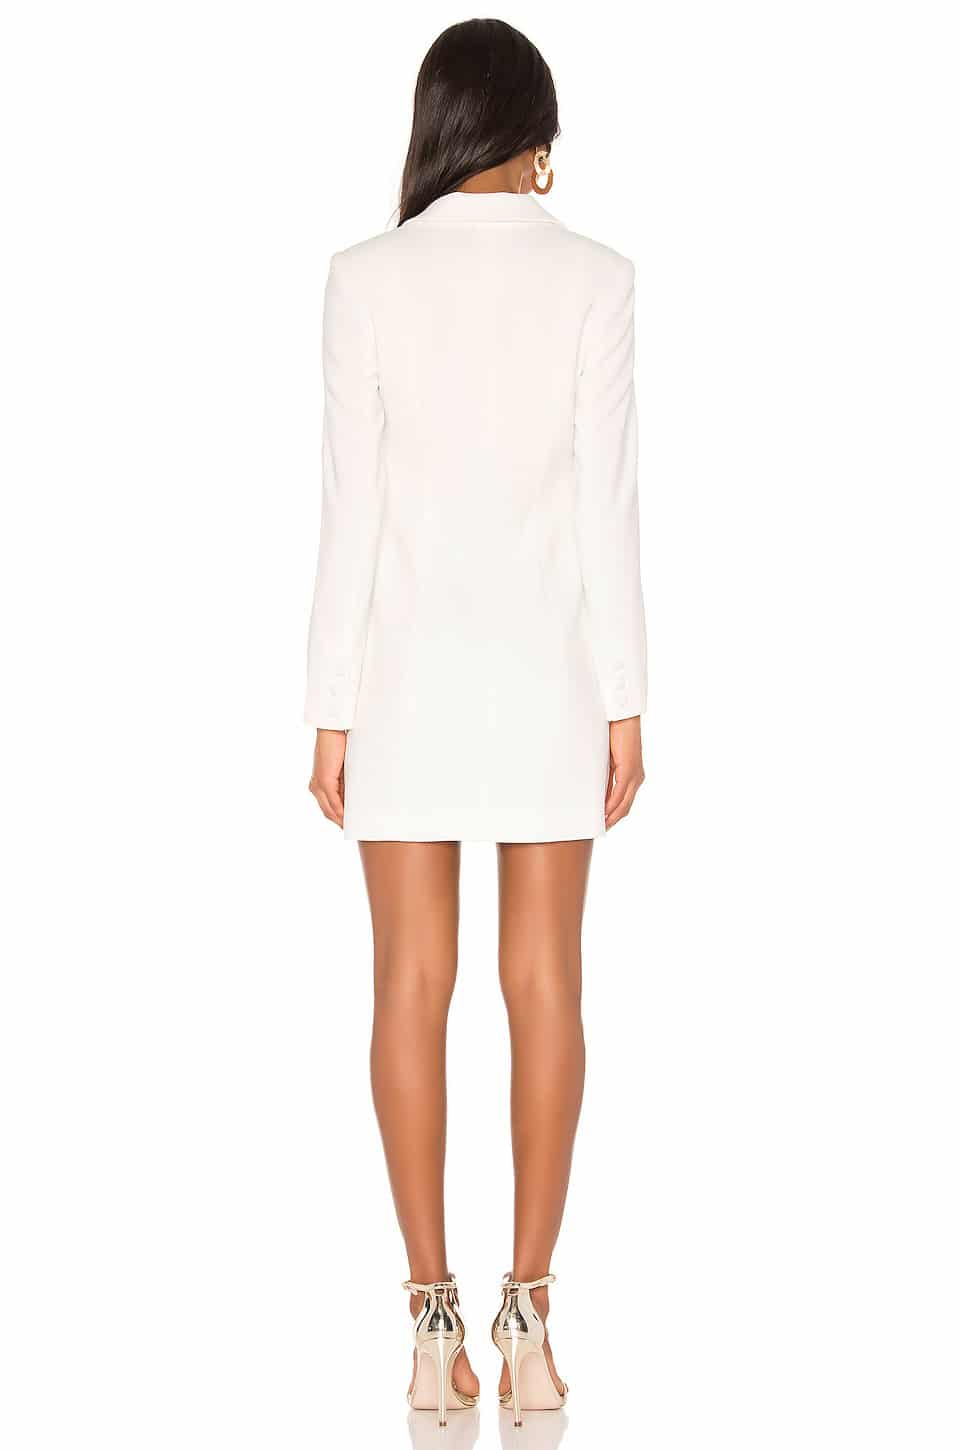 Ace Blazer Mini Dress